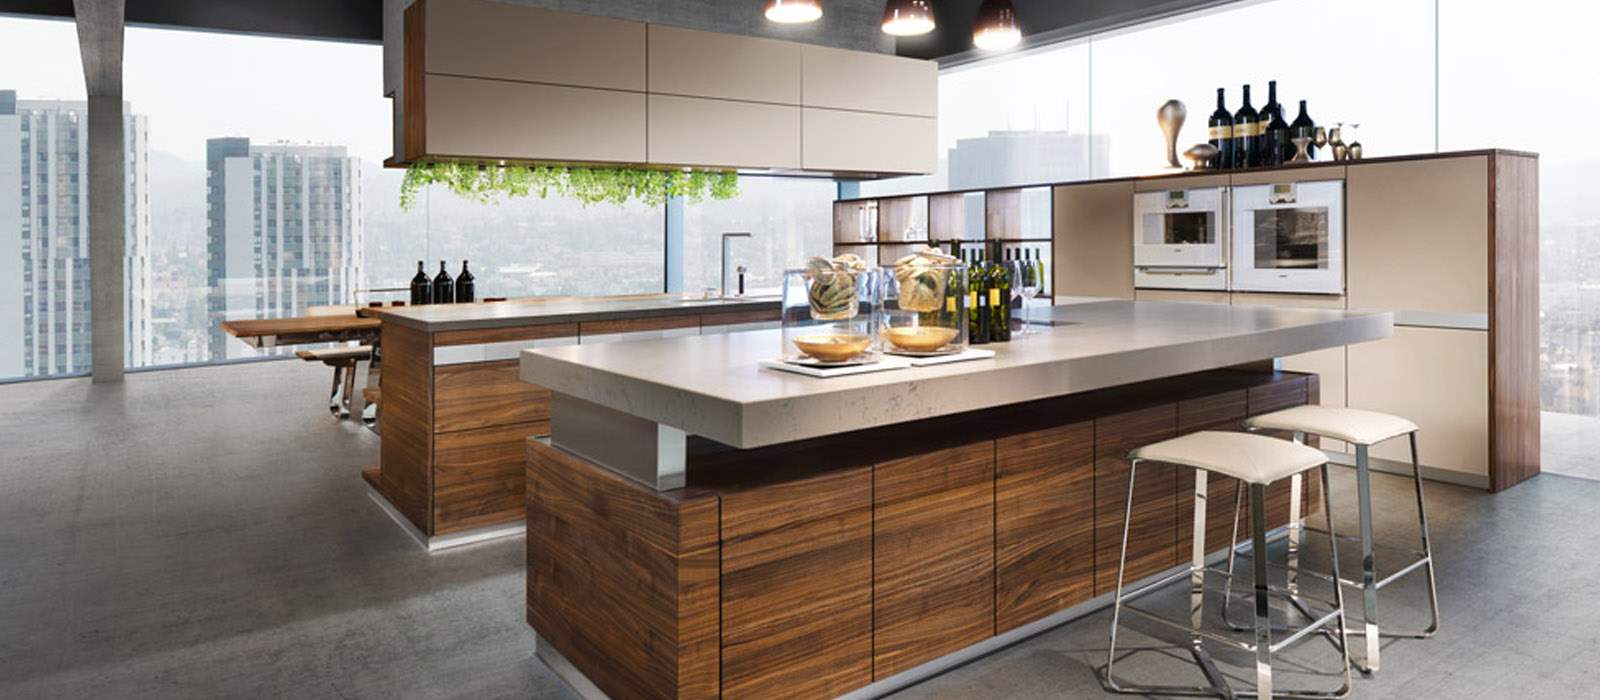 Modern Kitchen Cabinets German Kitchen Cabinets Modern Kitchens Team 7 Kitchen Leicht Kitchen